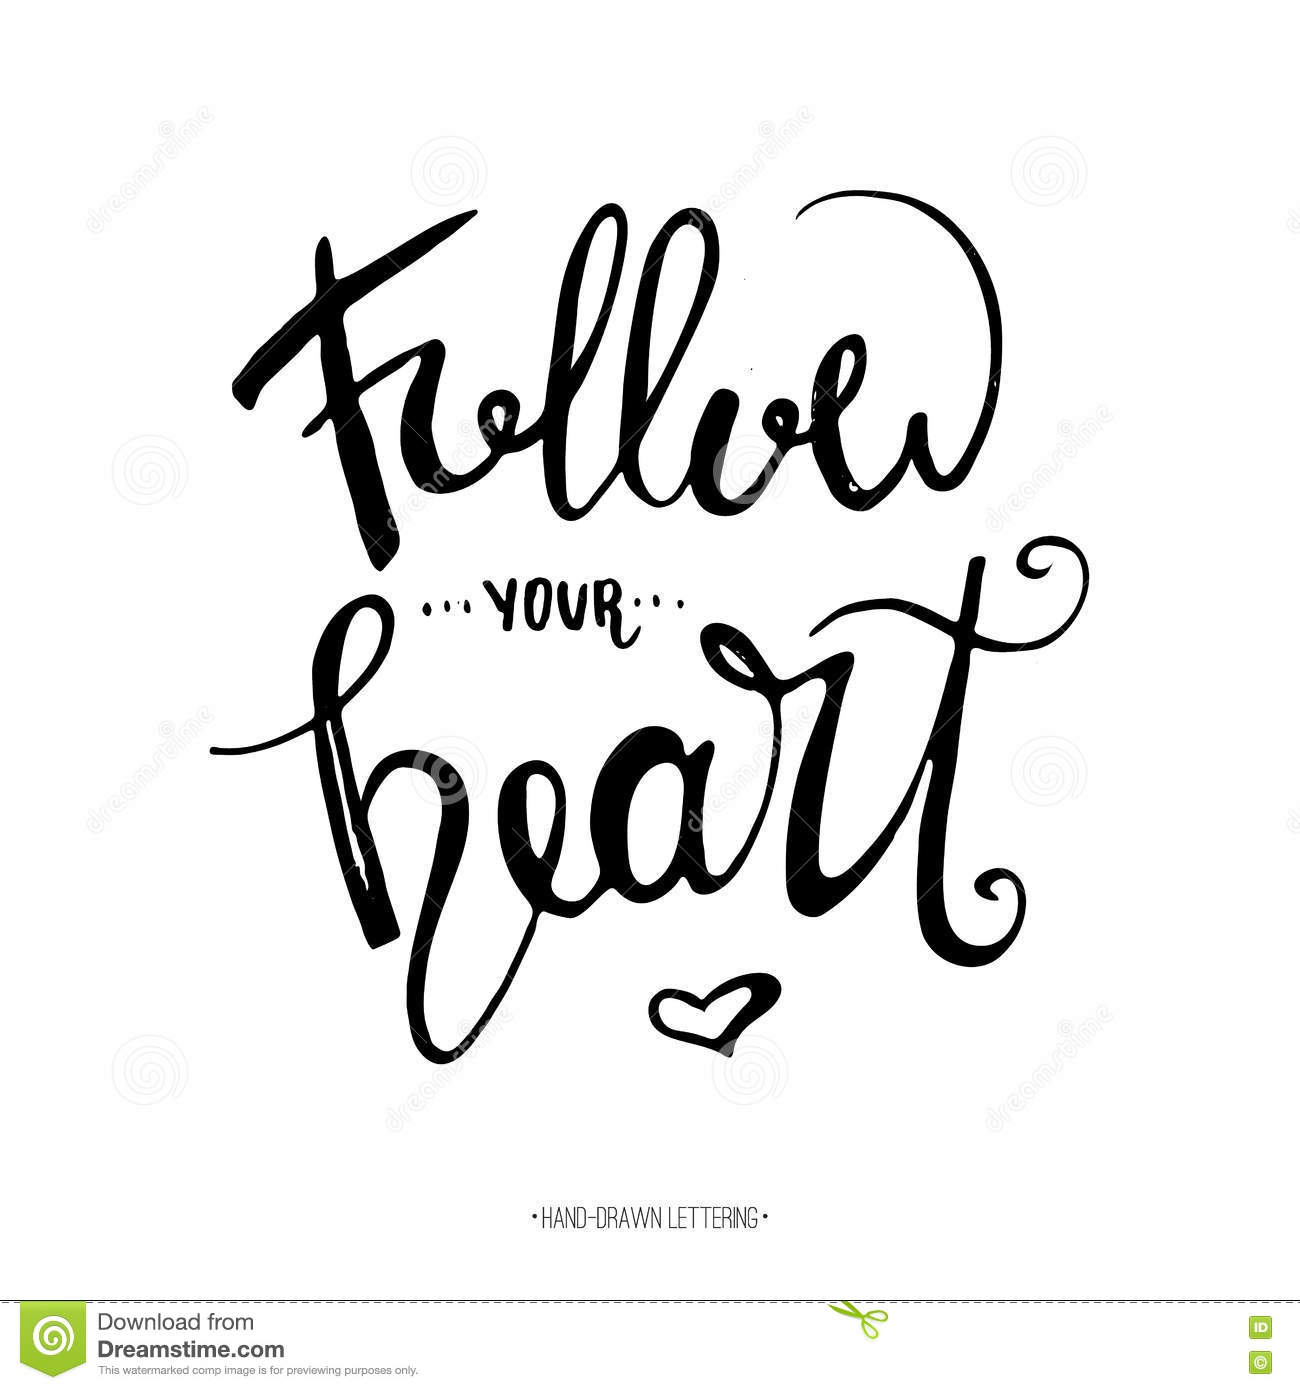 Follow your heart modern brush hand drawn ink calligraphy